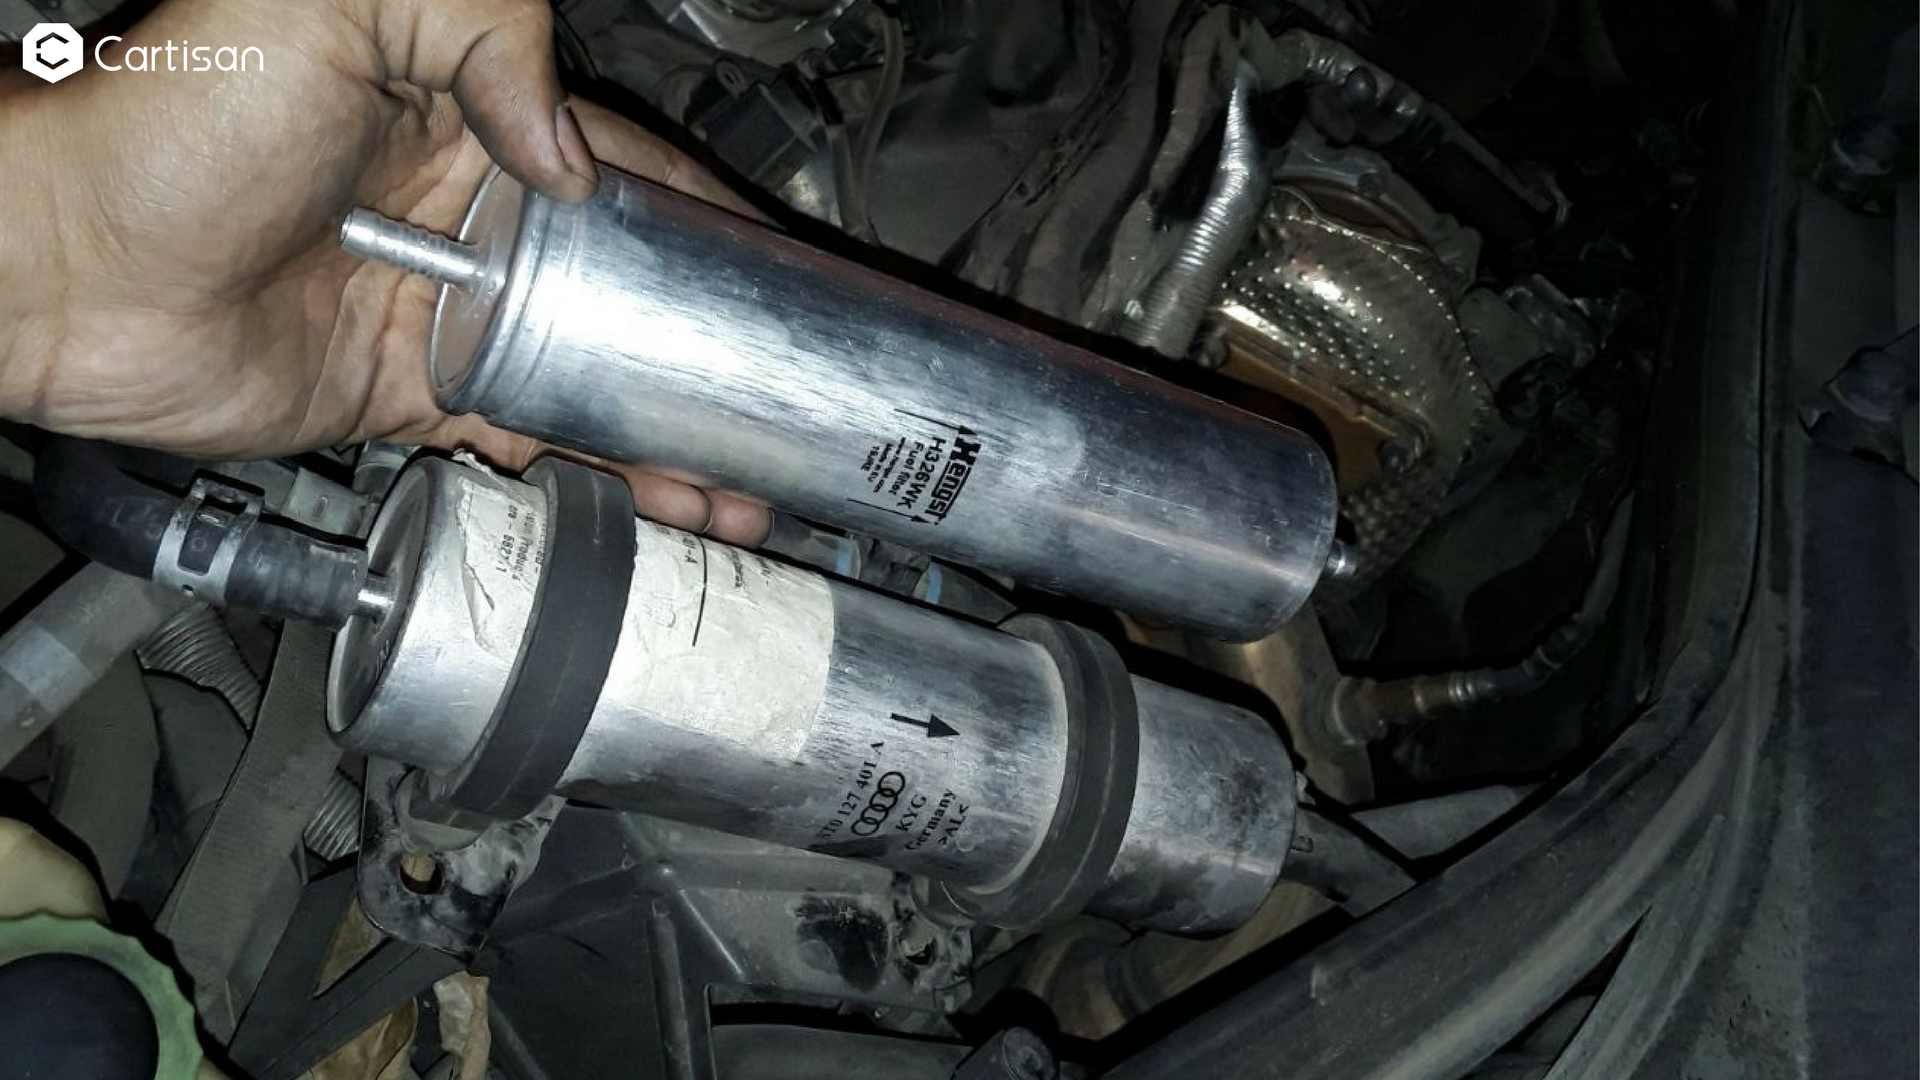 Audi Q7 Fuel Filter Location - Wiring Diagram Models agency-have -  agency-have.zeevaproduction.it | Audi Q7 Fuel Filter Location |  | agency-have.zeevaproduction.it